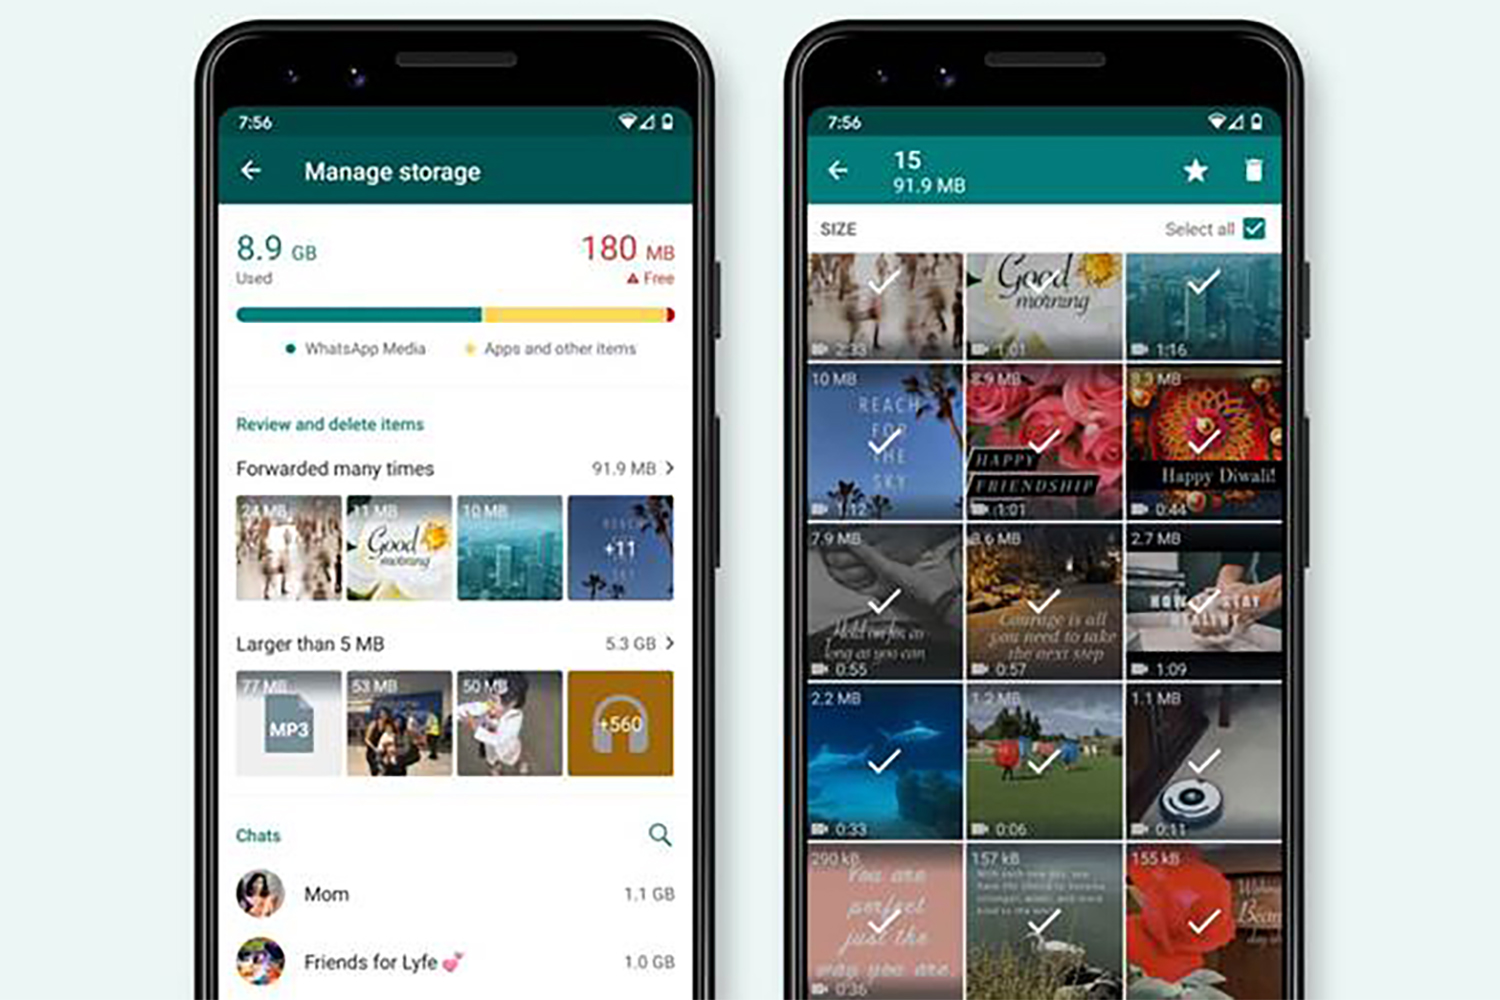 WhatsApp's new storage management feature will free up space on your mobile